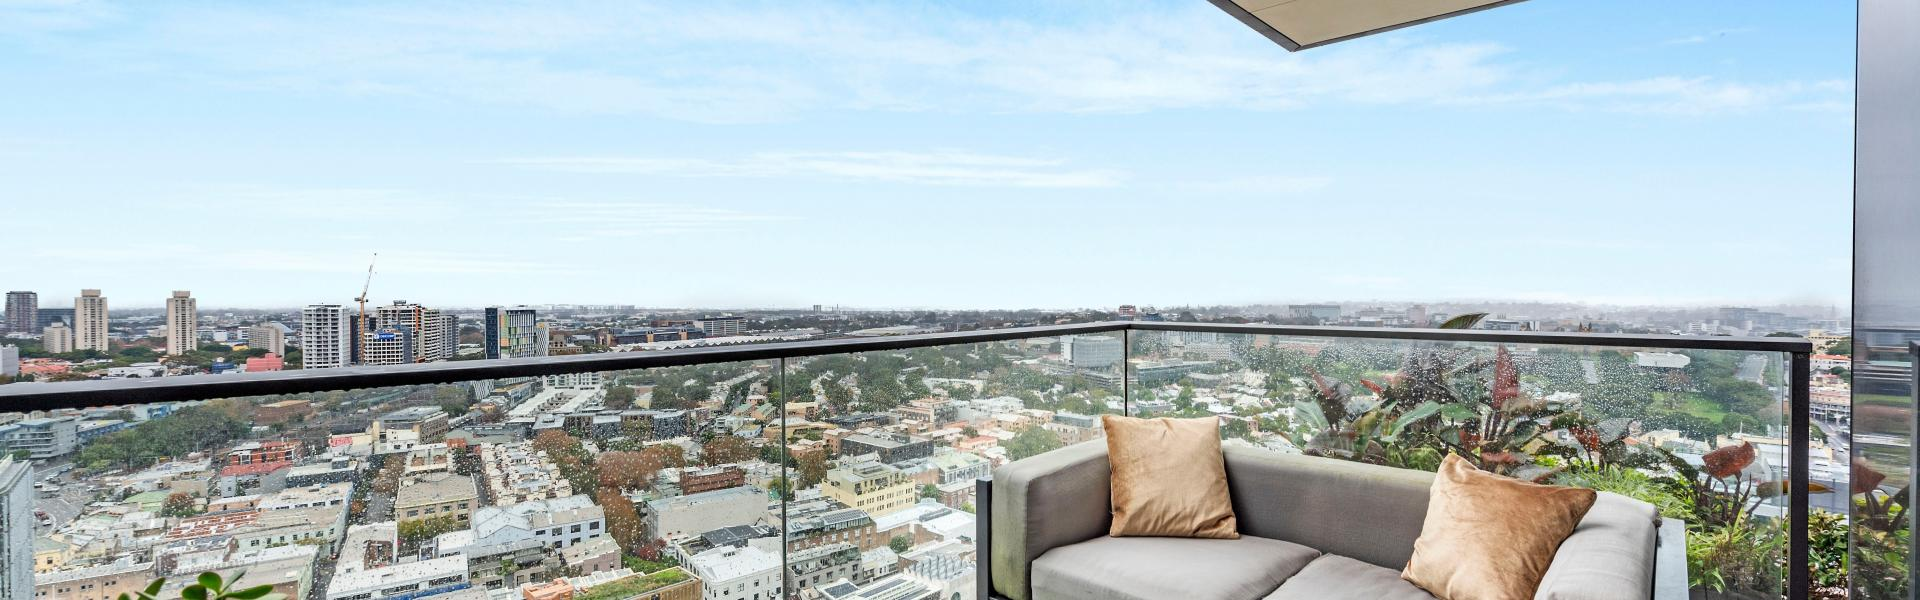 HIGH LEVEL DUAL KEY APARTMENT IN CENTRAL PARK